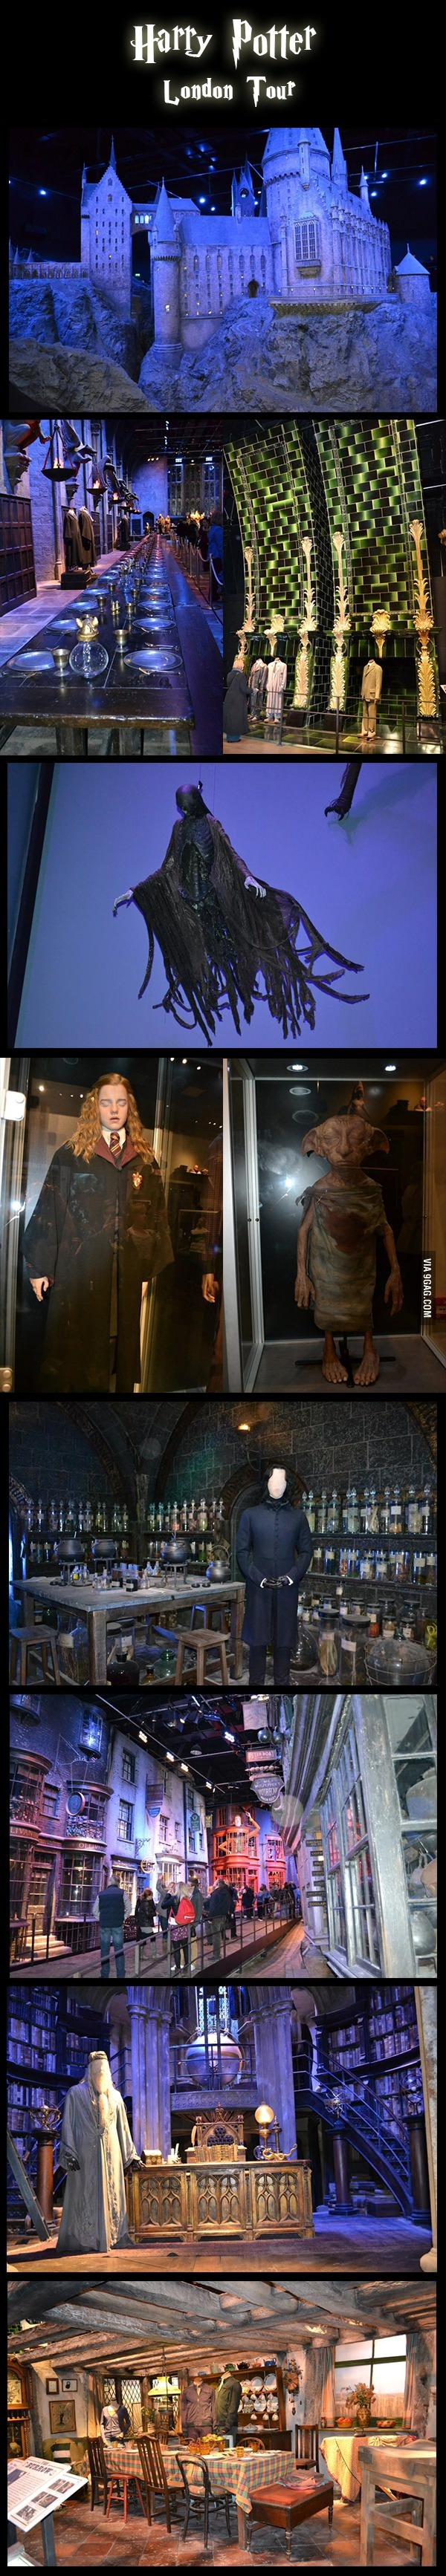 Harry Potter London Tour - definitely want to do this